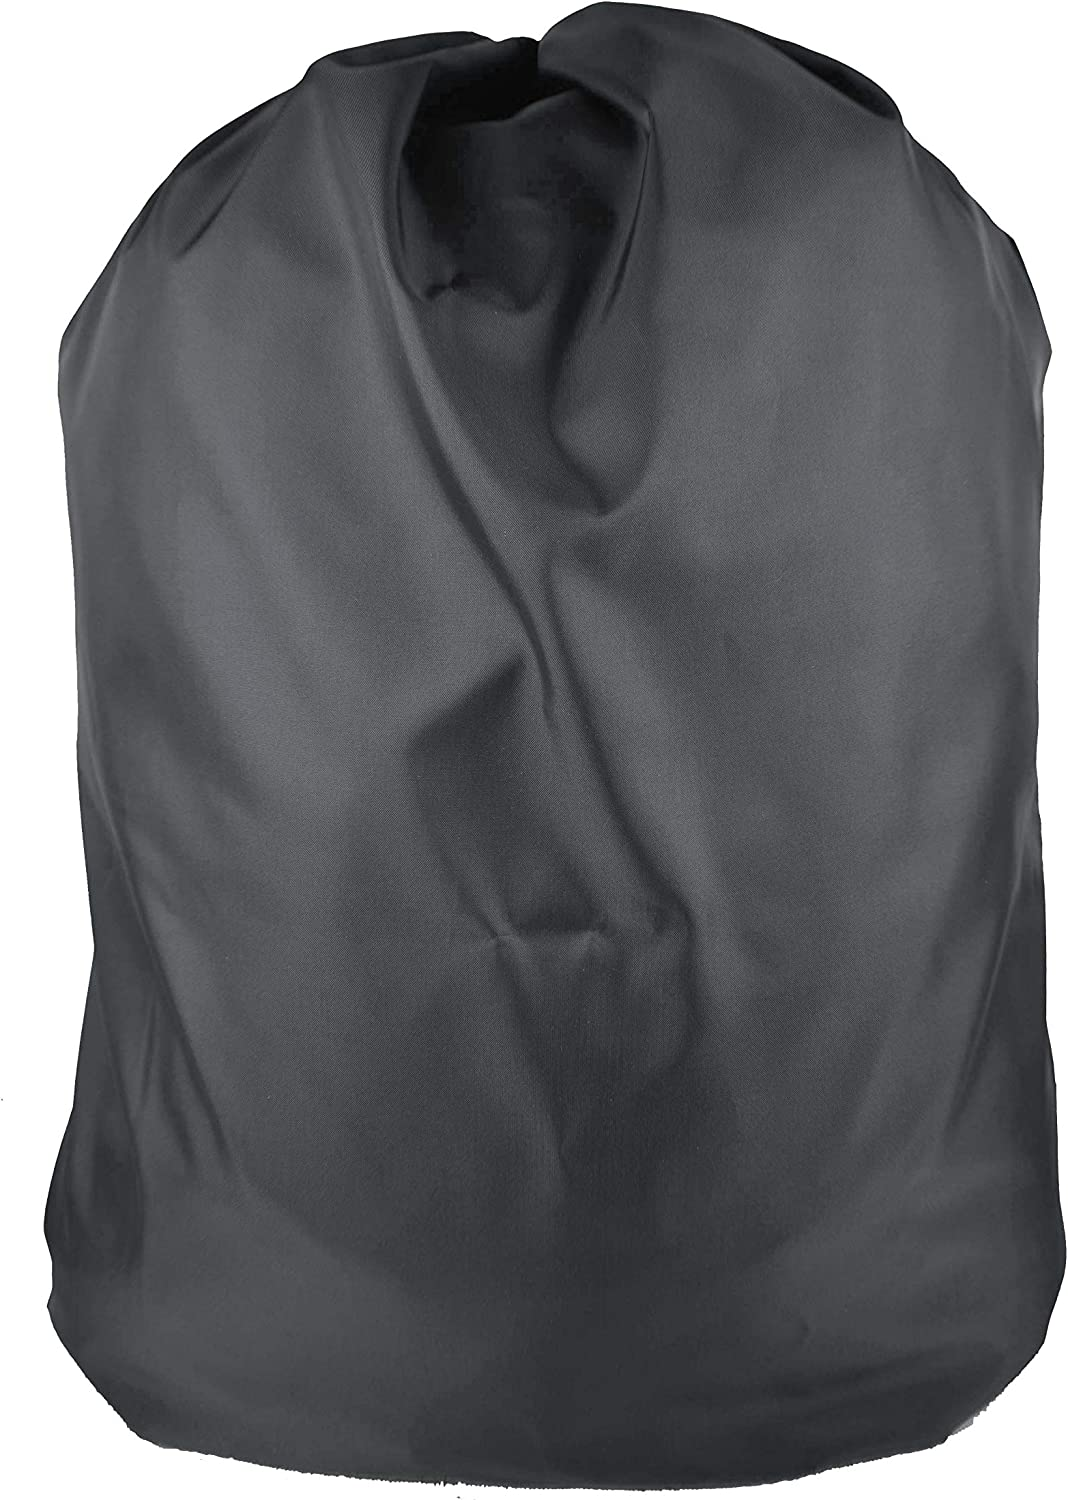 "Nylon Bag Waterproof Coated with Drawstring for Laundry, Storage, Travel 30""X40"" (Black)"